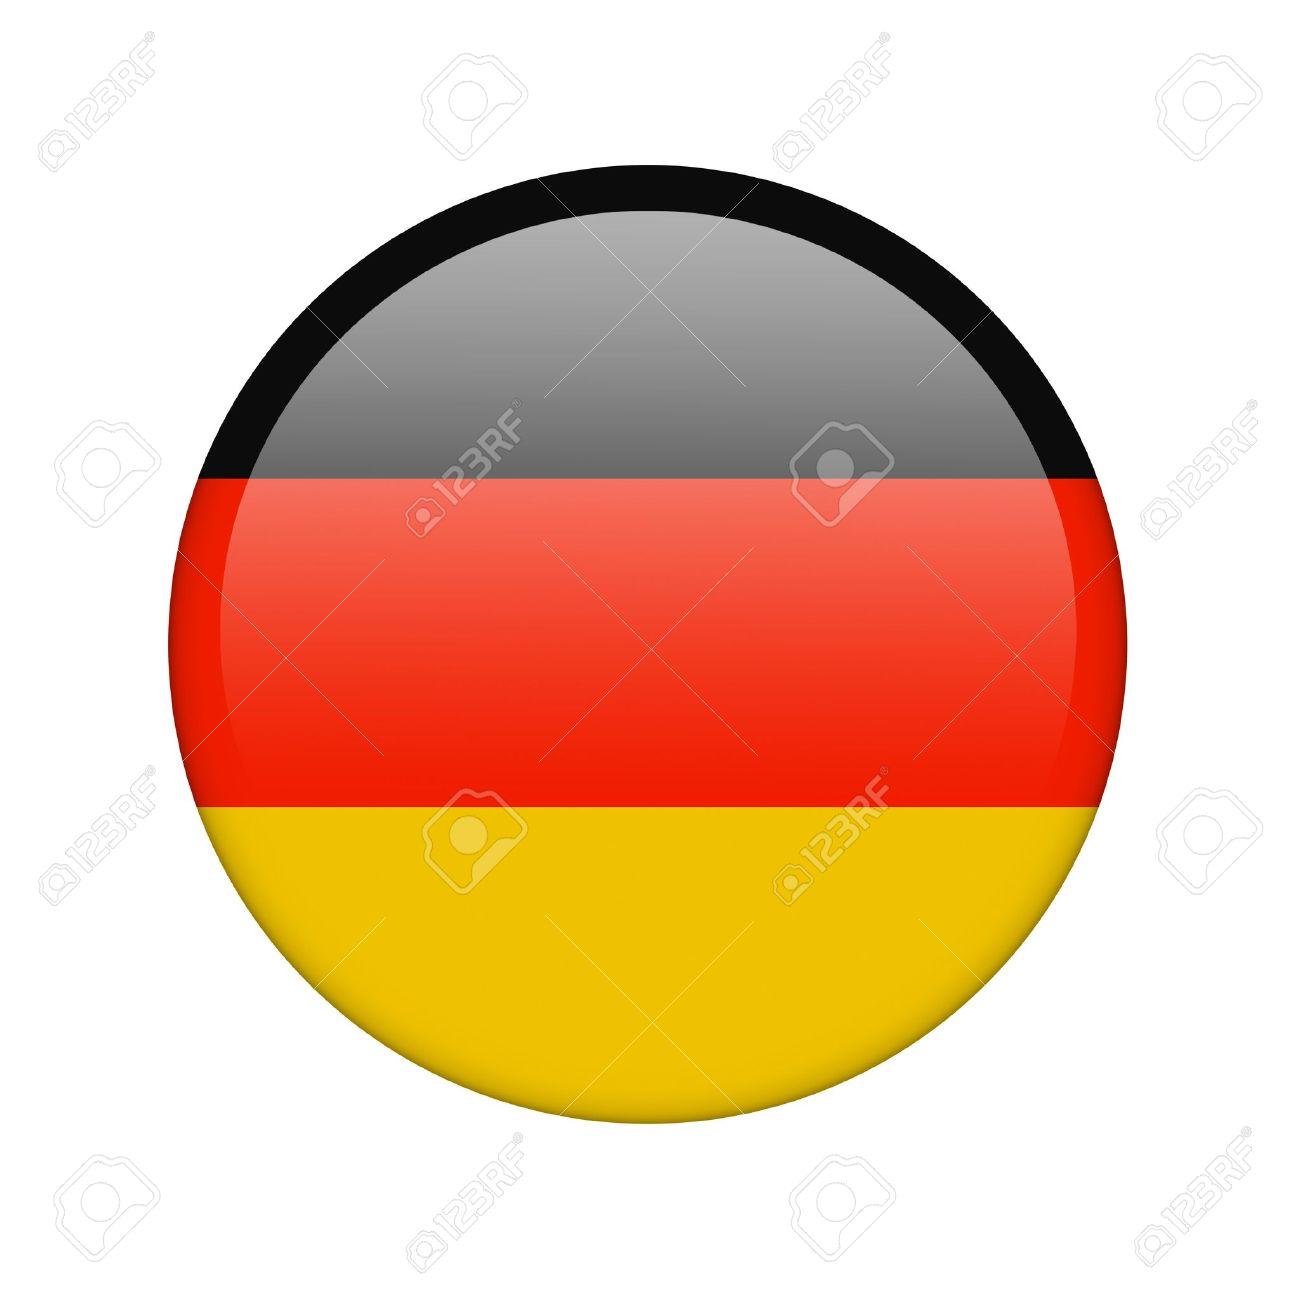 The German flag in the form of a glossy icon. Stock Photo - 16760688